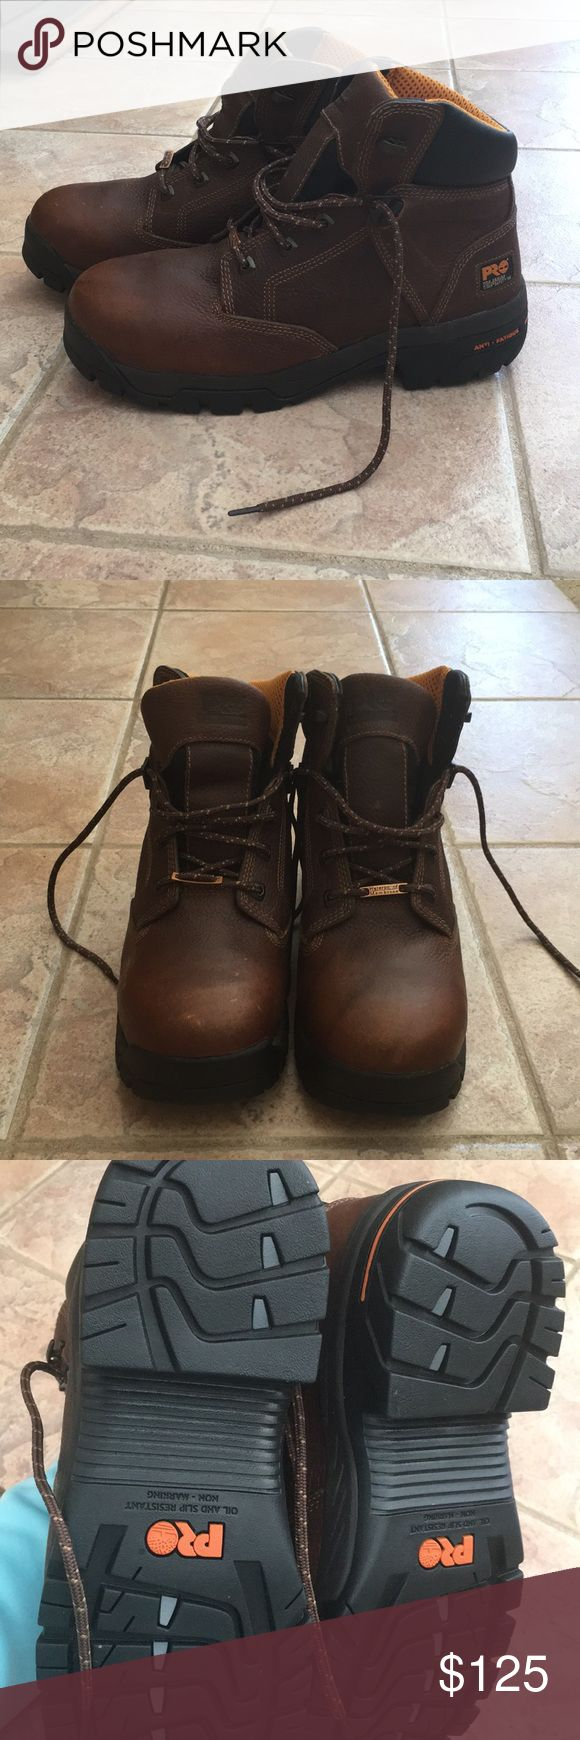 Men's Timberland Work Boots- Never Worn! Composite/safety toe work boots. Perfect for working outside or at a job. Never worn. Timberland Shoes Lace Up Boots